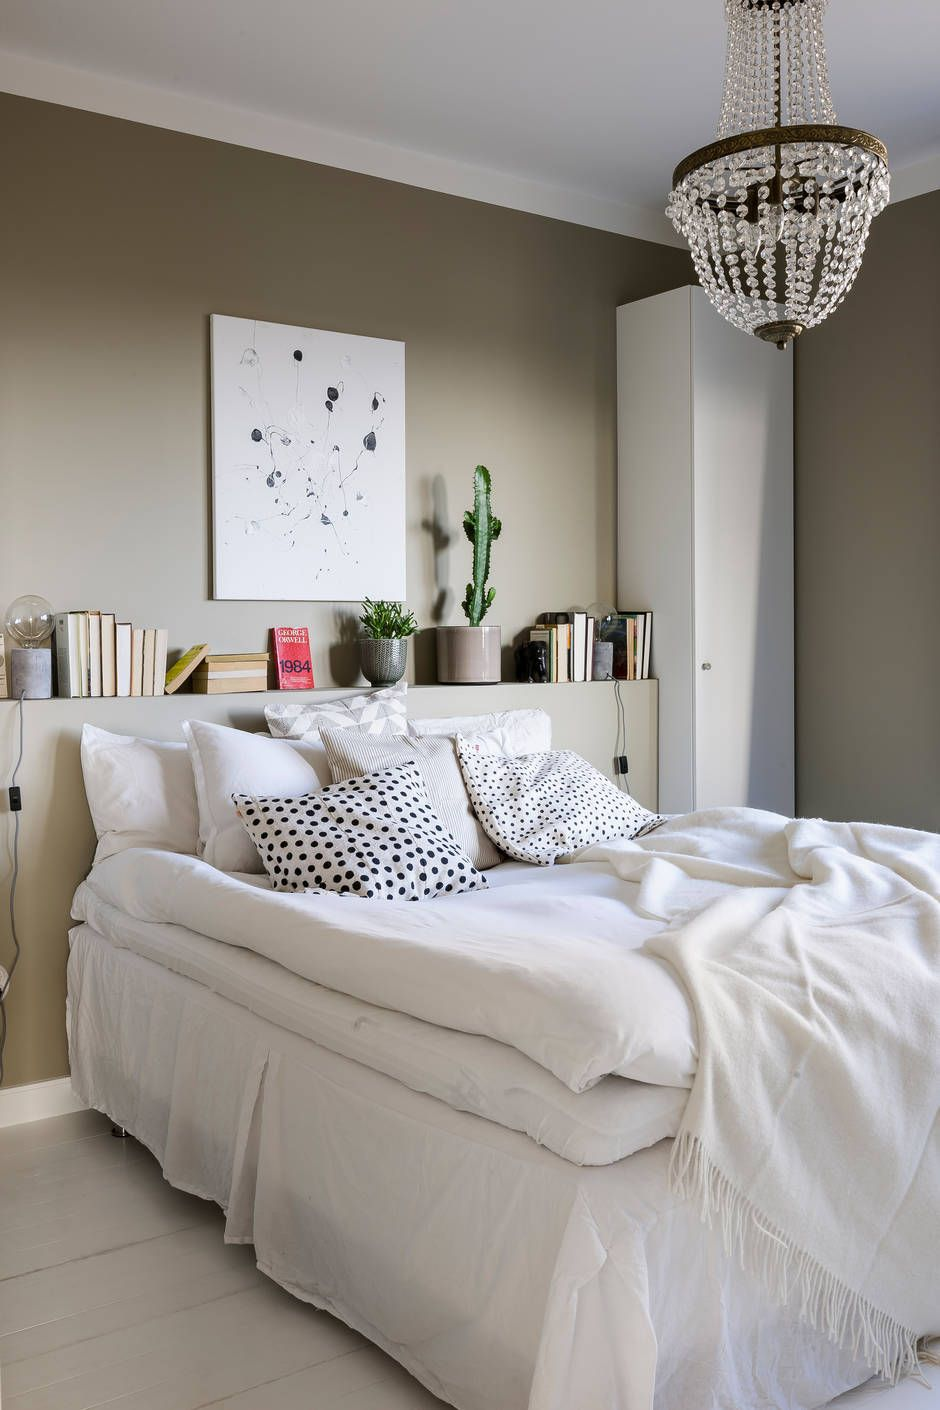 The Nordroom - Creative Headboard and Bedroom Styling Ideas (source: BOSTHLM)